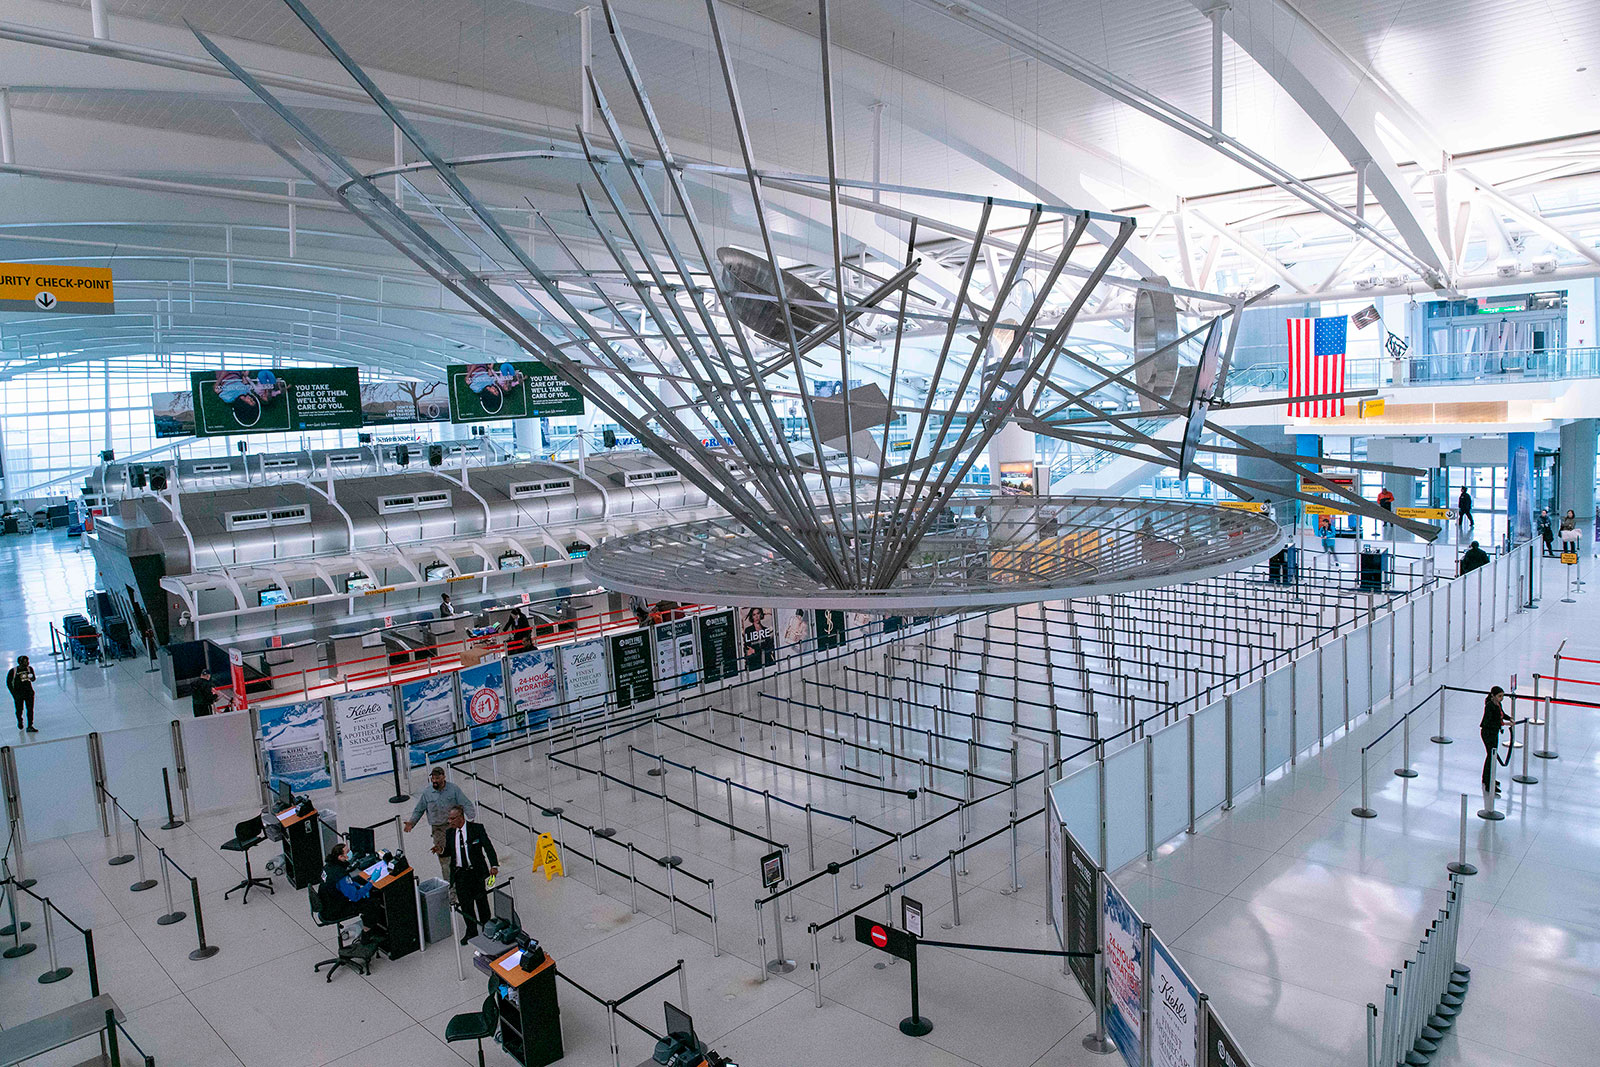 The interior of Terminal 1 at John F. Kennedy International Airport on March 12.